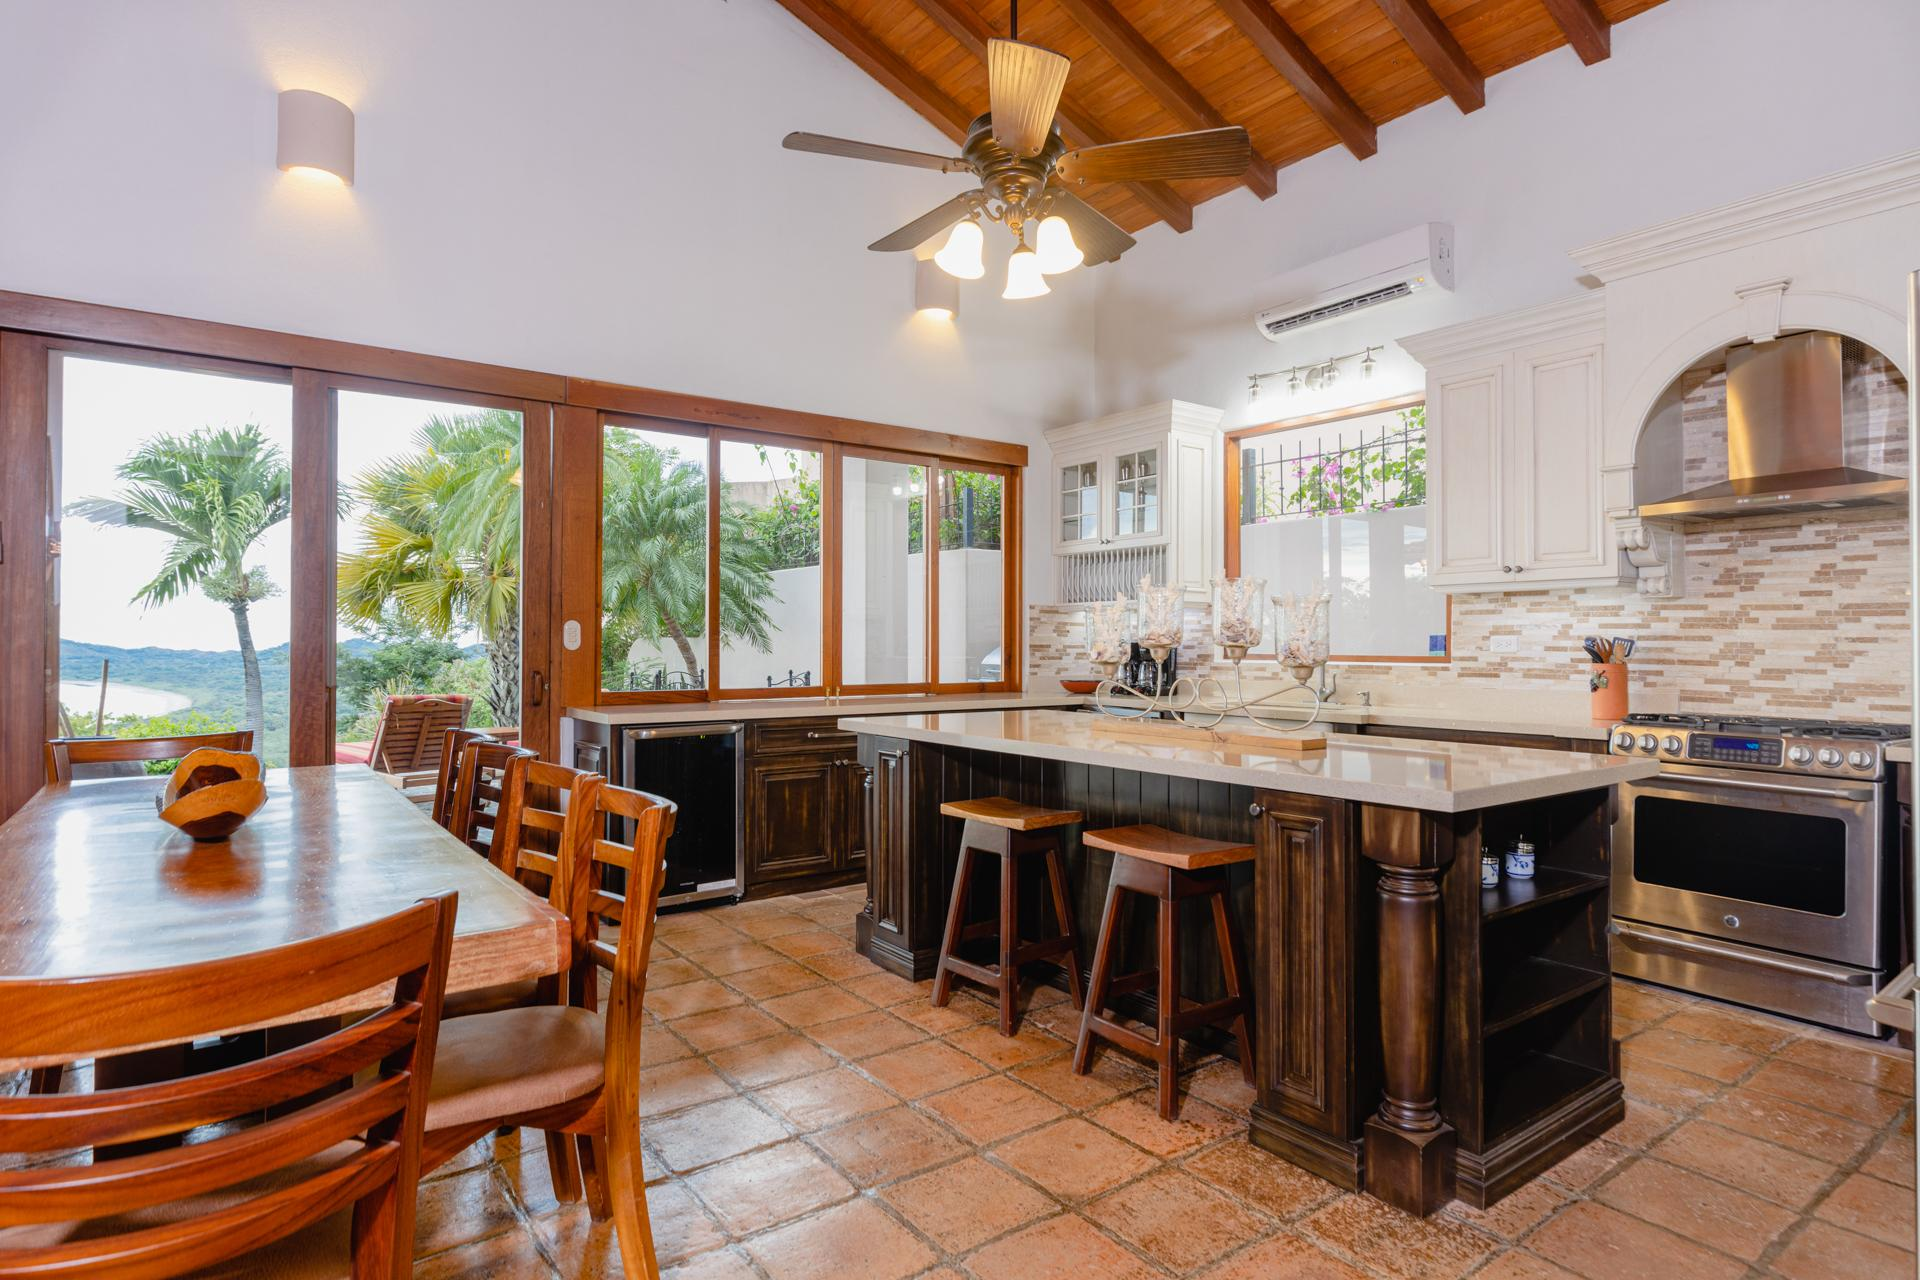 Classic beach house kitchen w